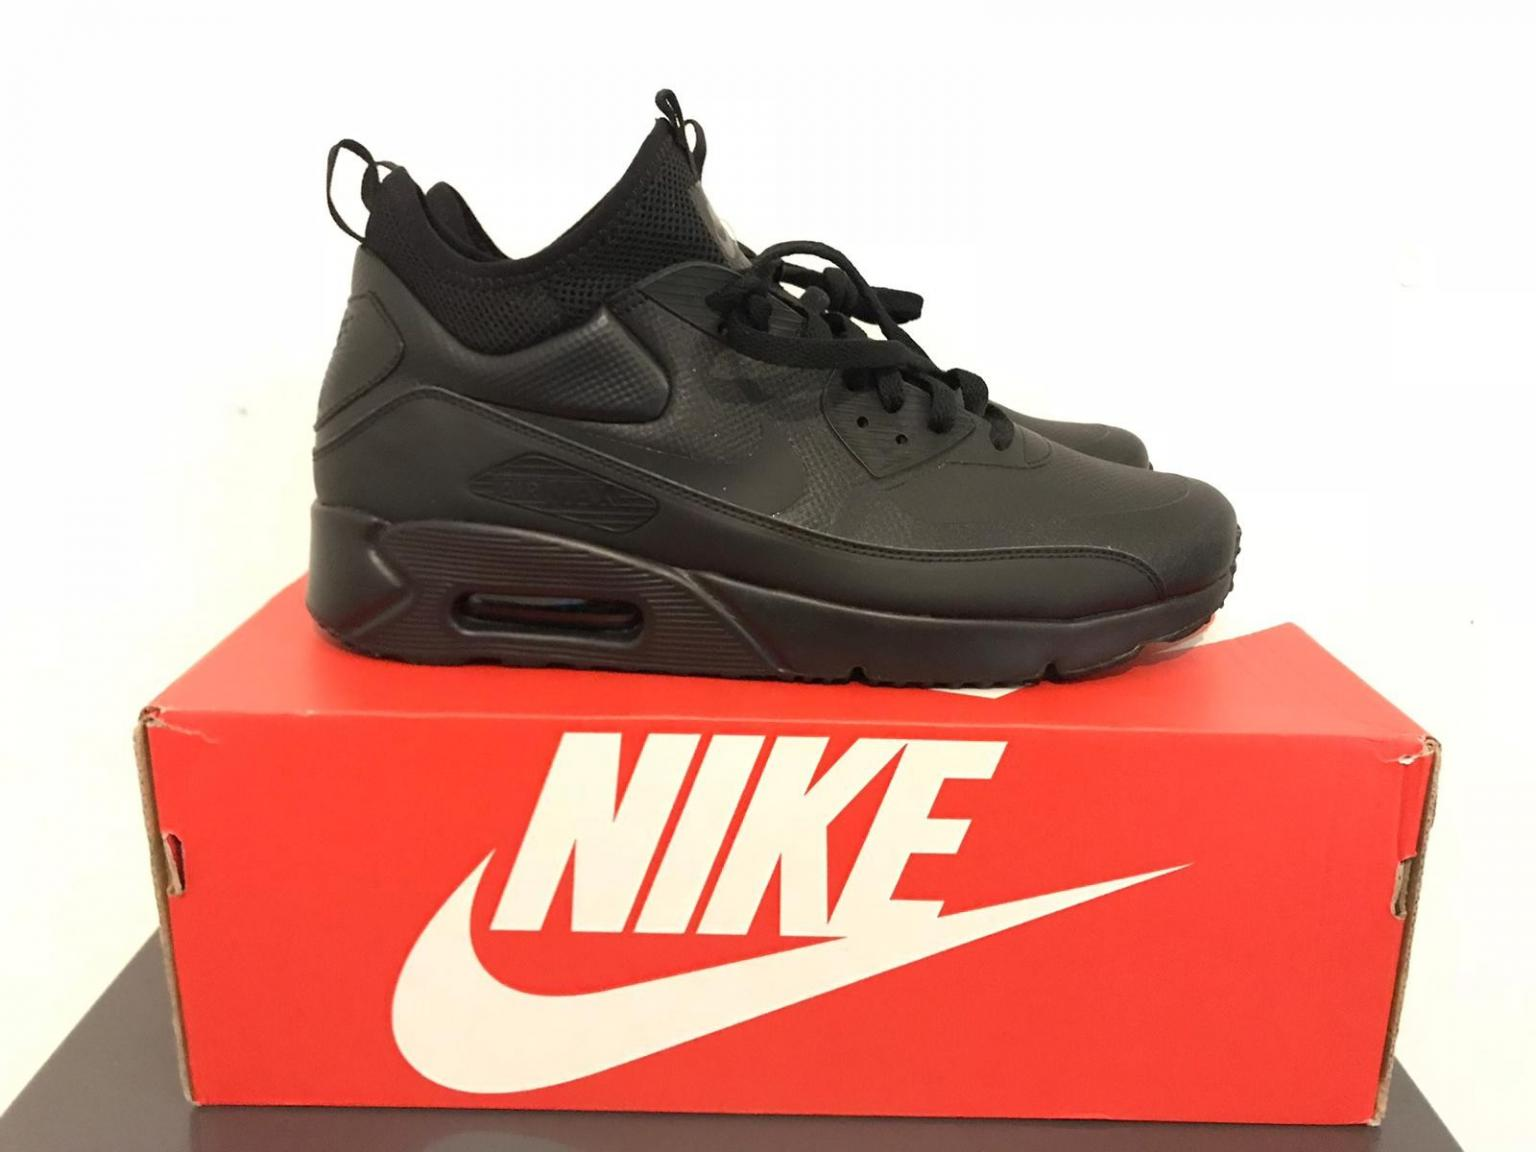 Nike Air Max Mid Winter 90 in E7 Newham for £115.00 for sale